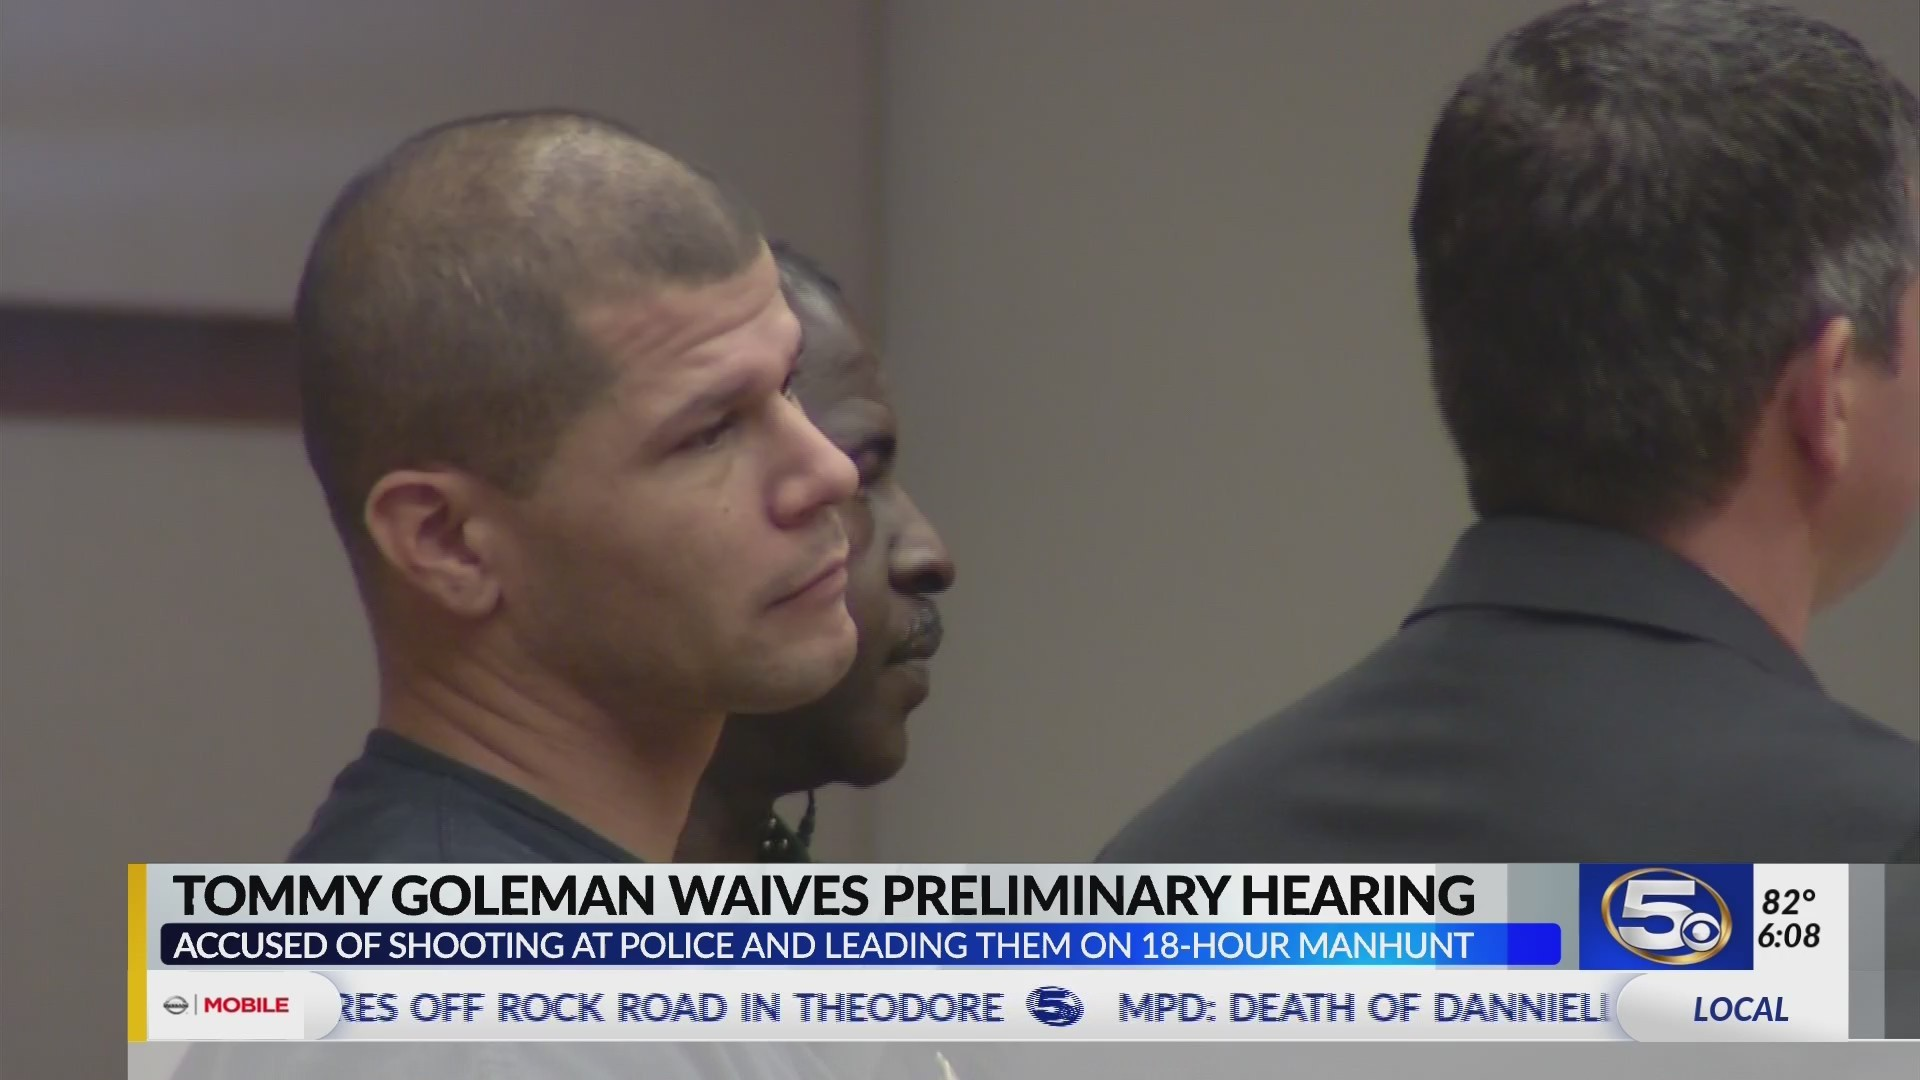 VIDEO: Tommy Goleman in court Tuesday